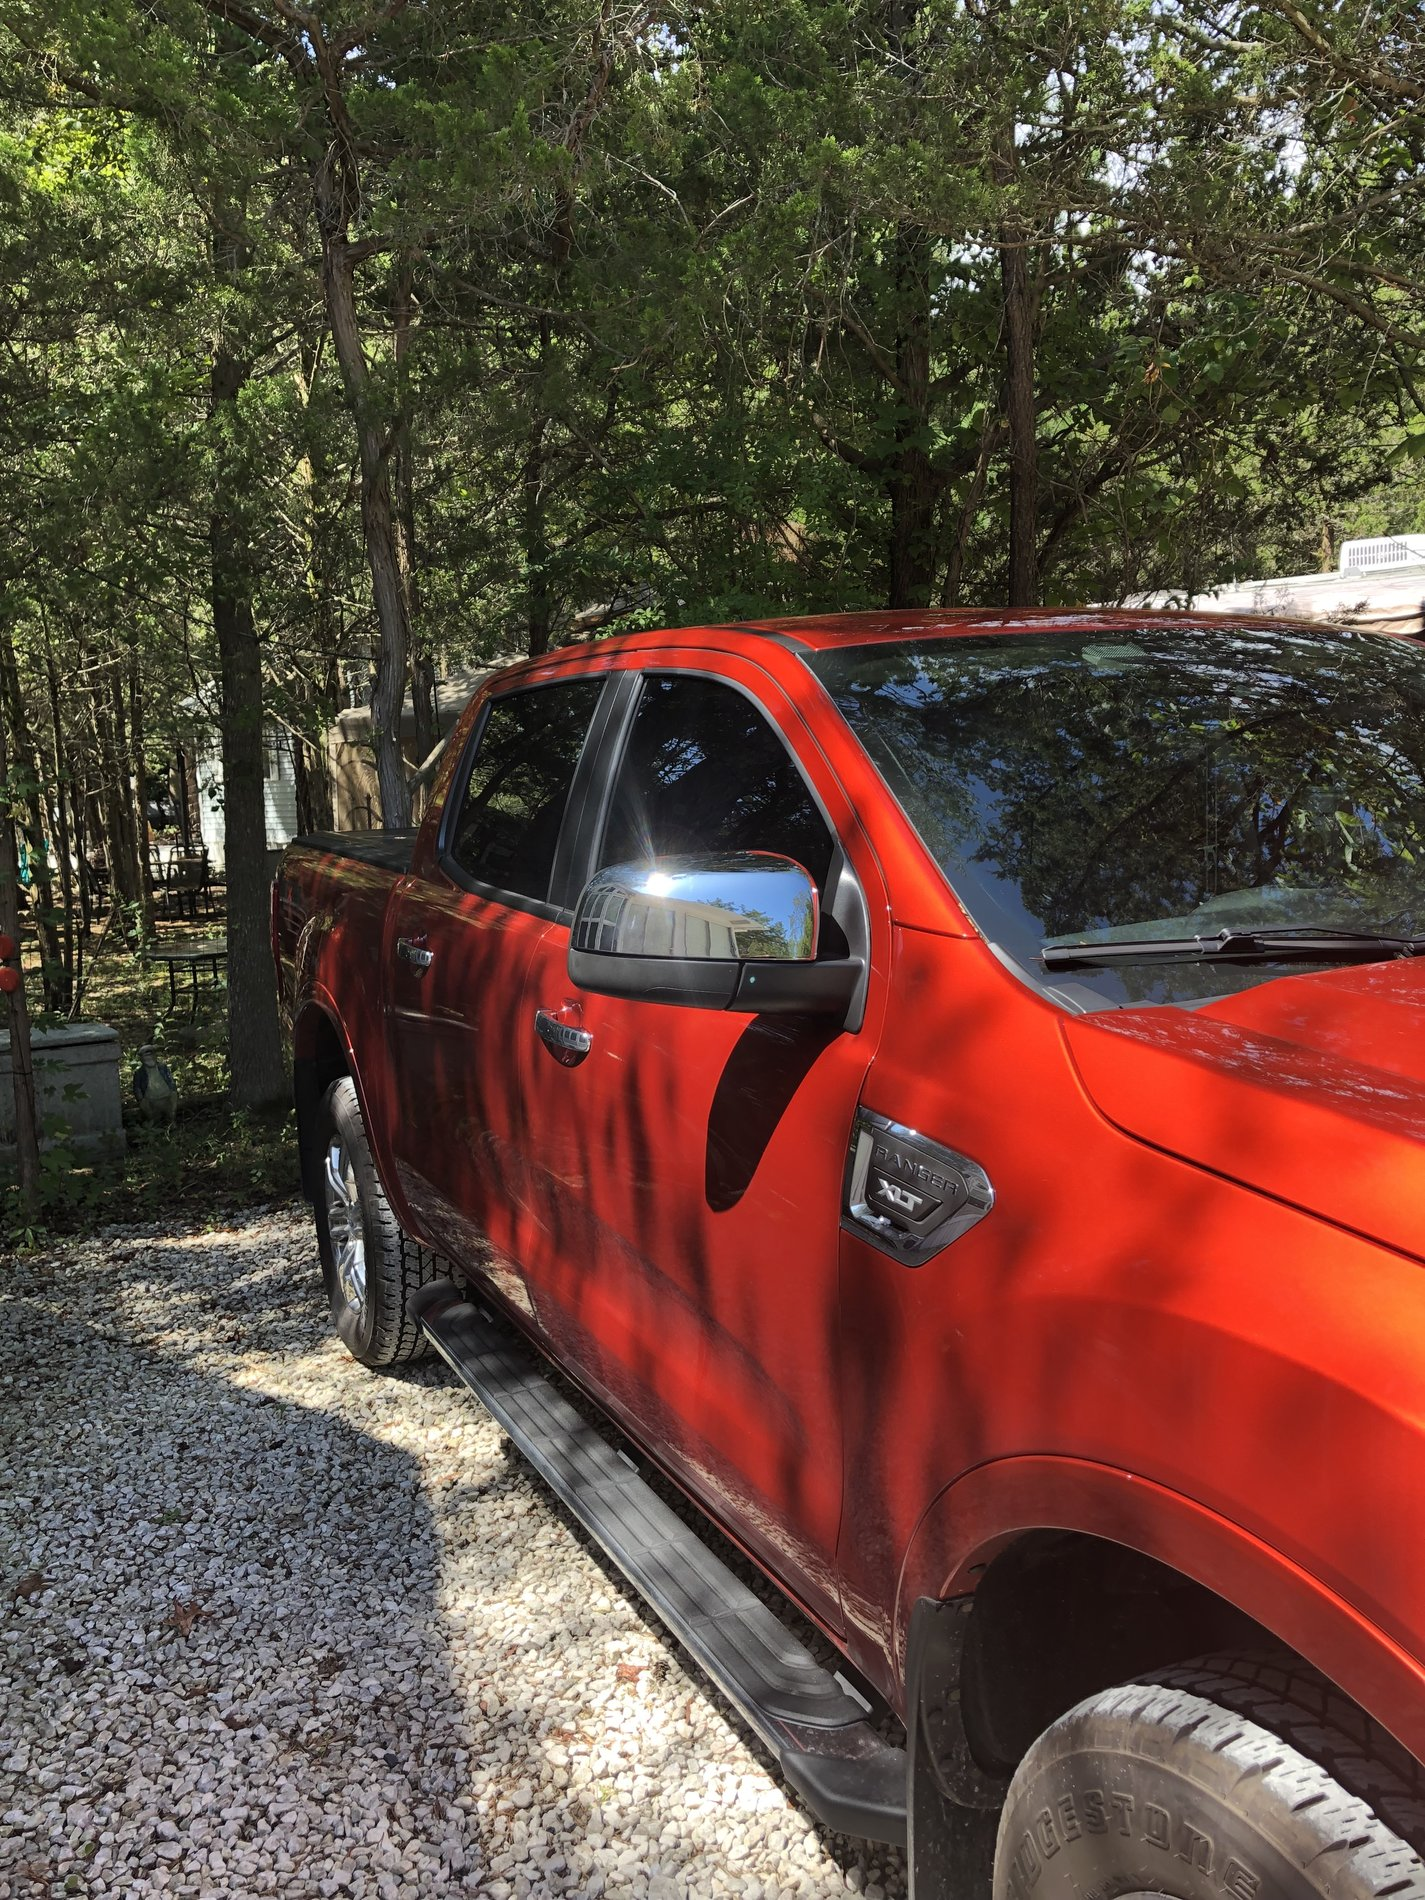 Installed Chrome Mirror Covers On My Xlt 2019 Ford Ranger And Raptor Forum 5th Generation Ranger5g Com